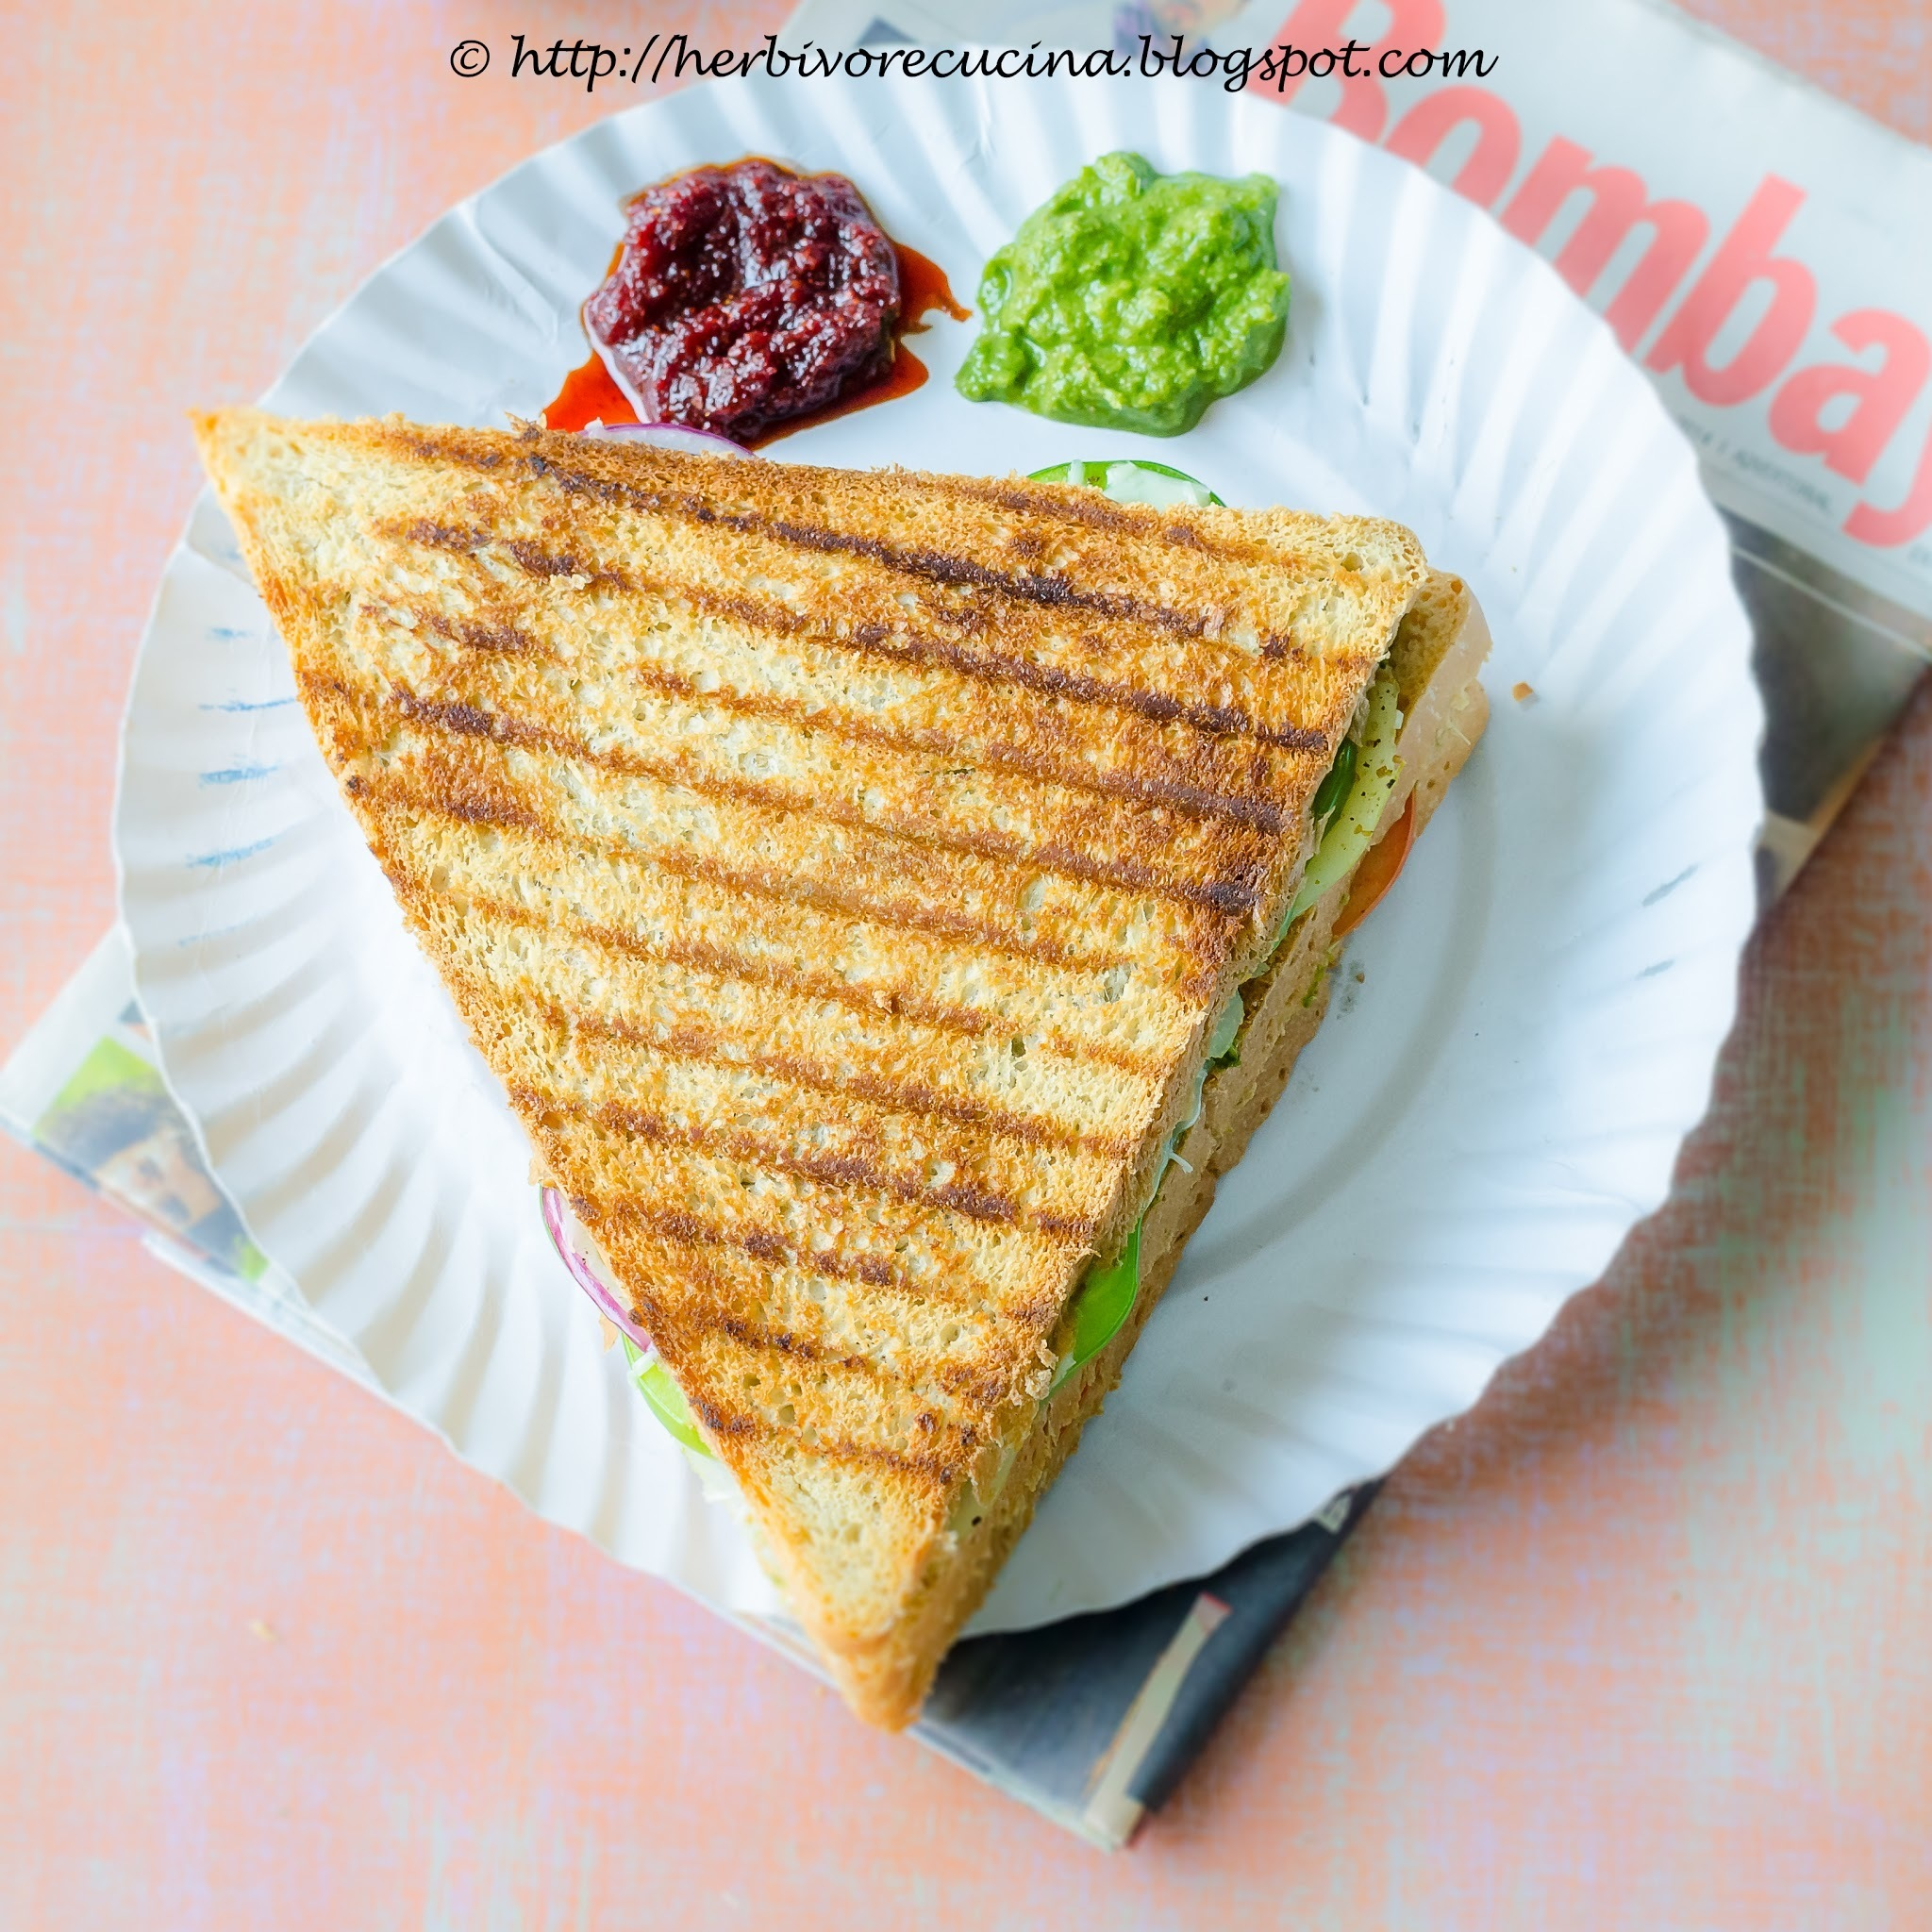 Vegetable and Cheese Grilled Sandwich